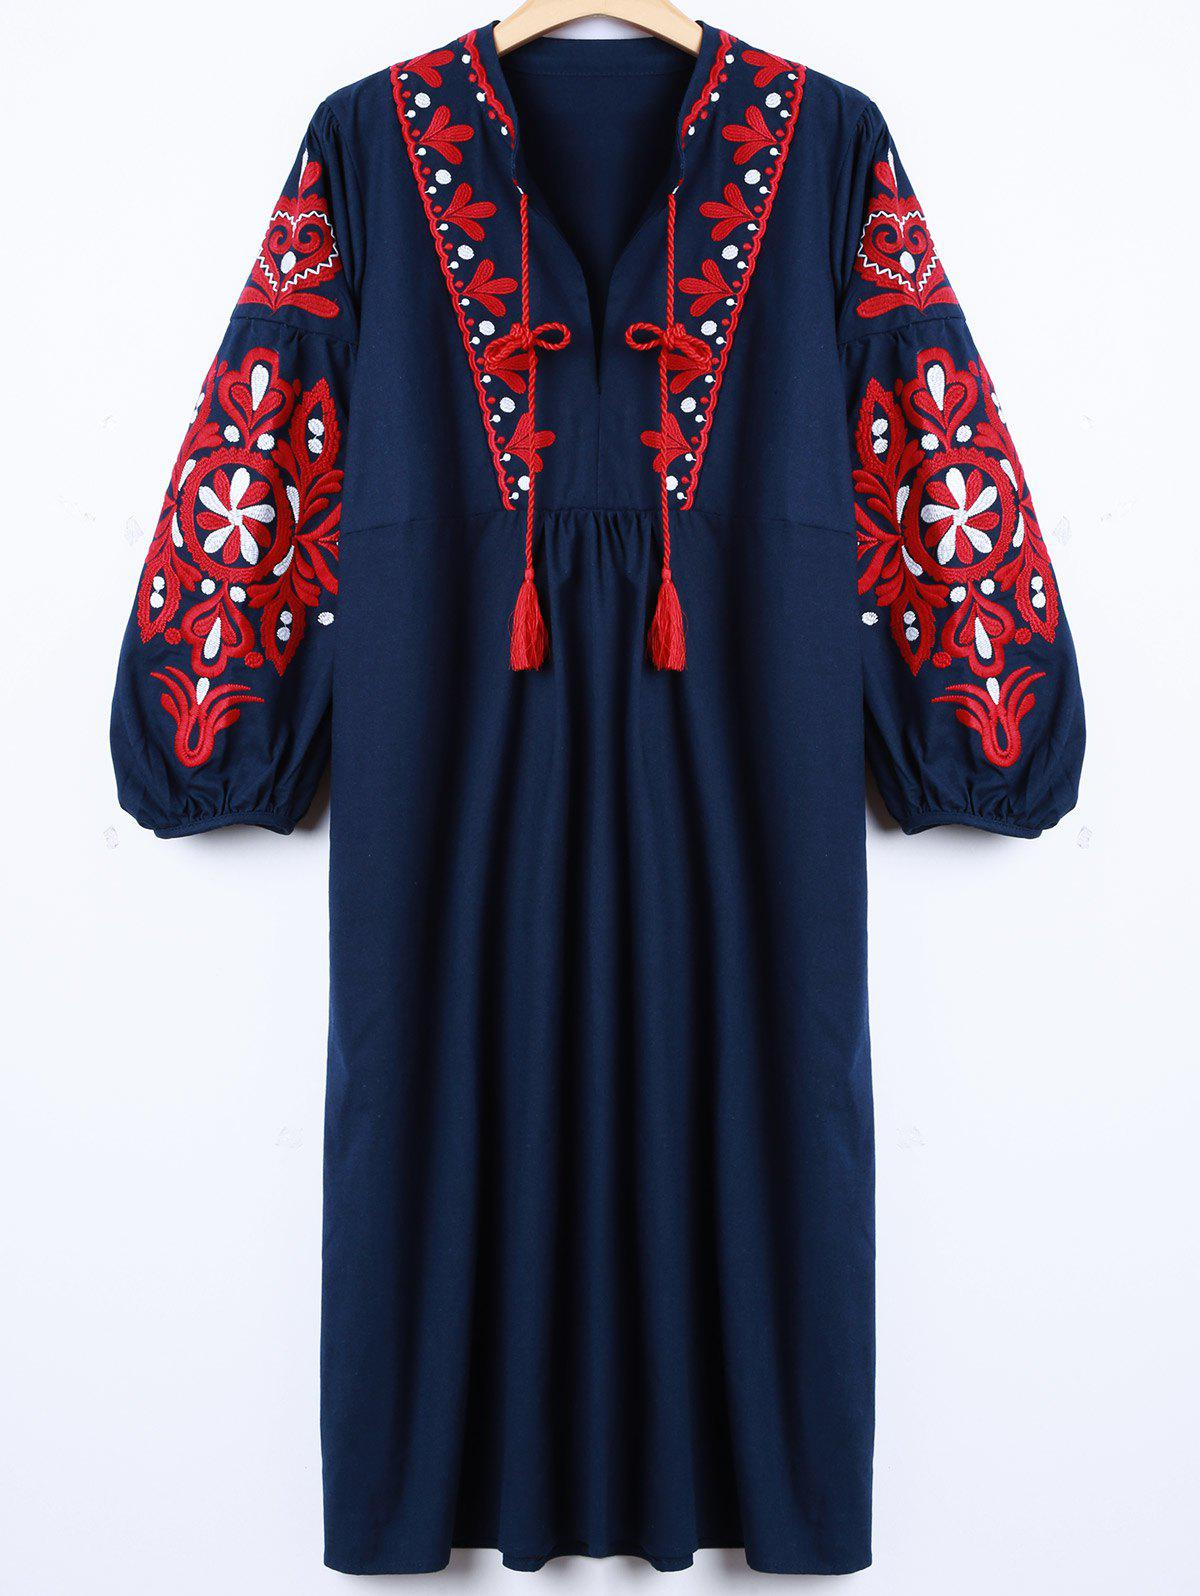 Fashion Casual Lantern Sleeve Embroidered Dress